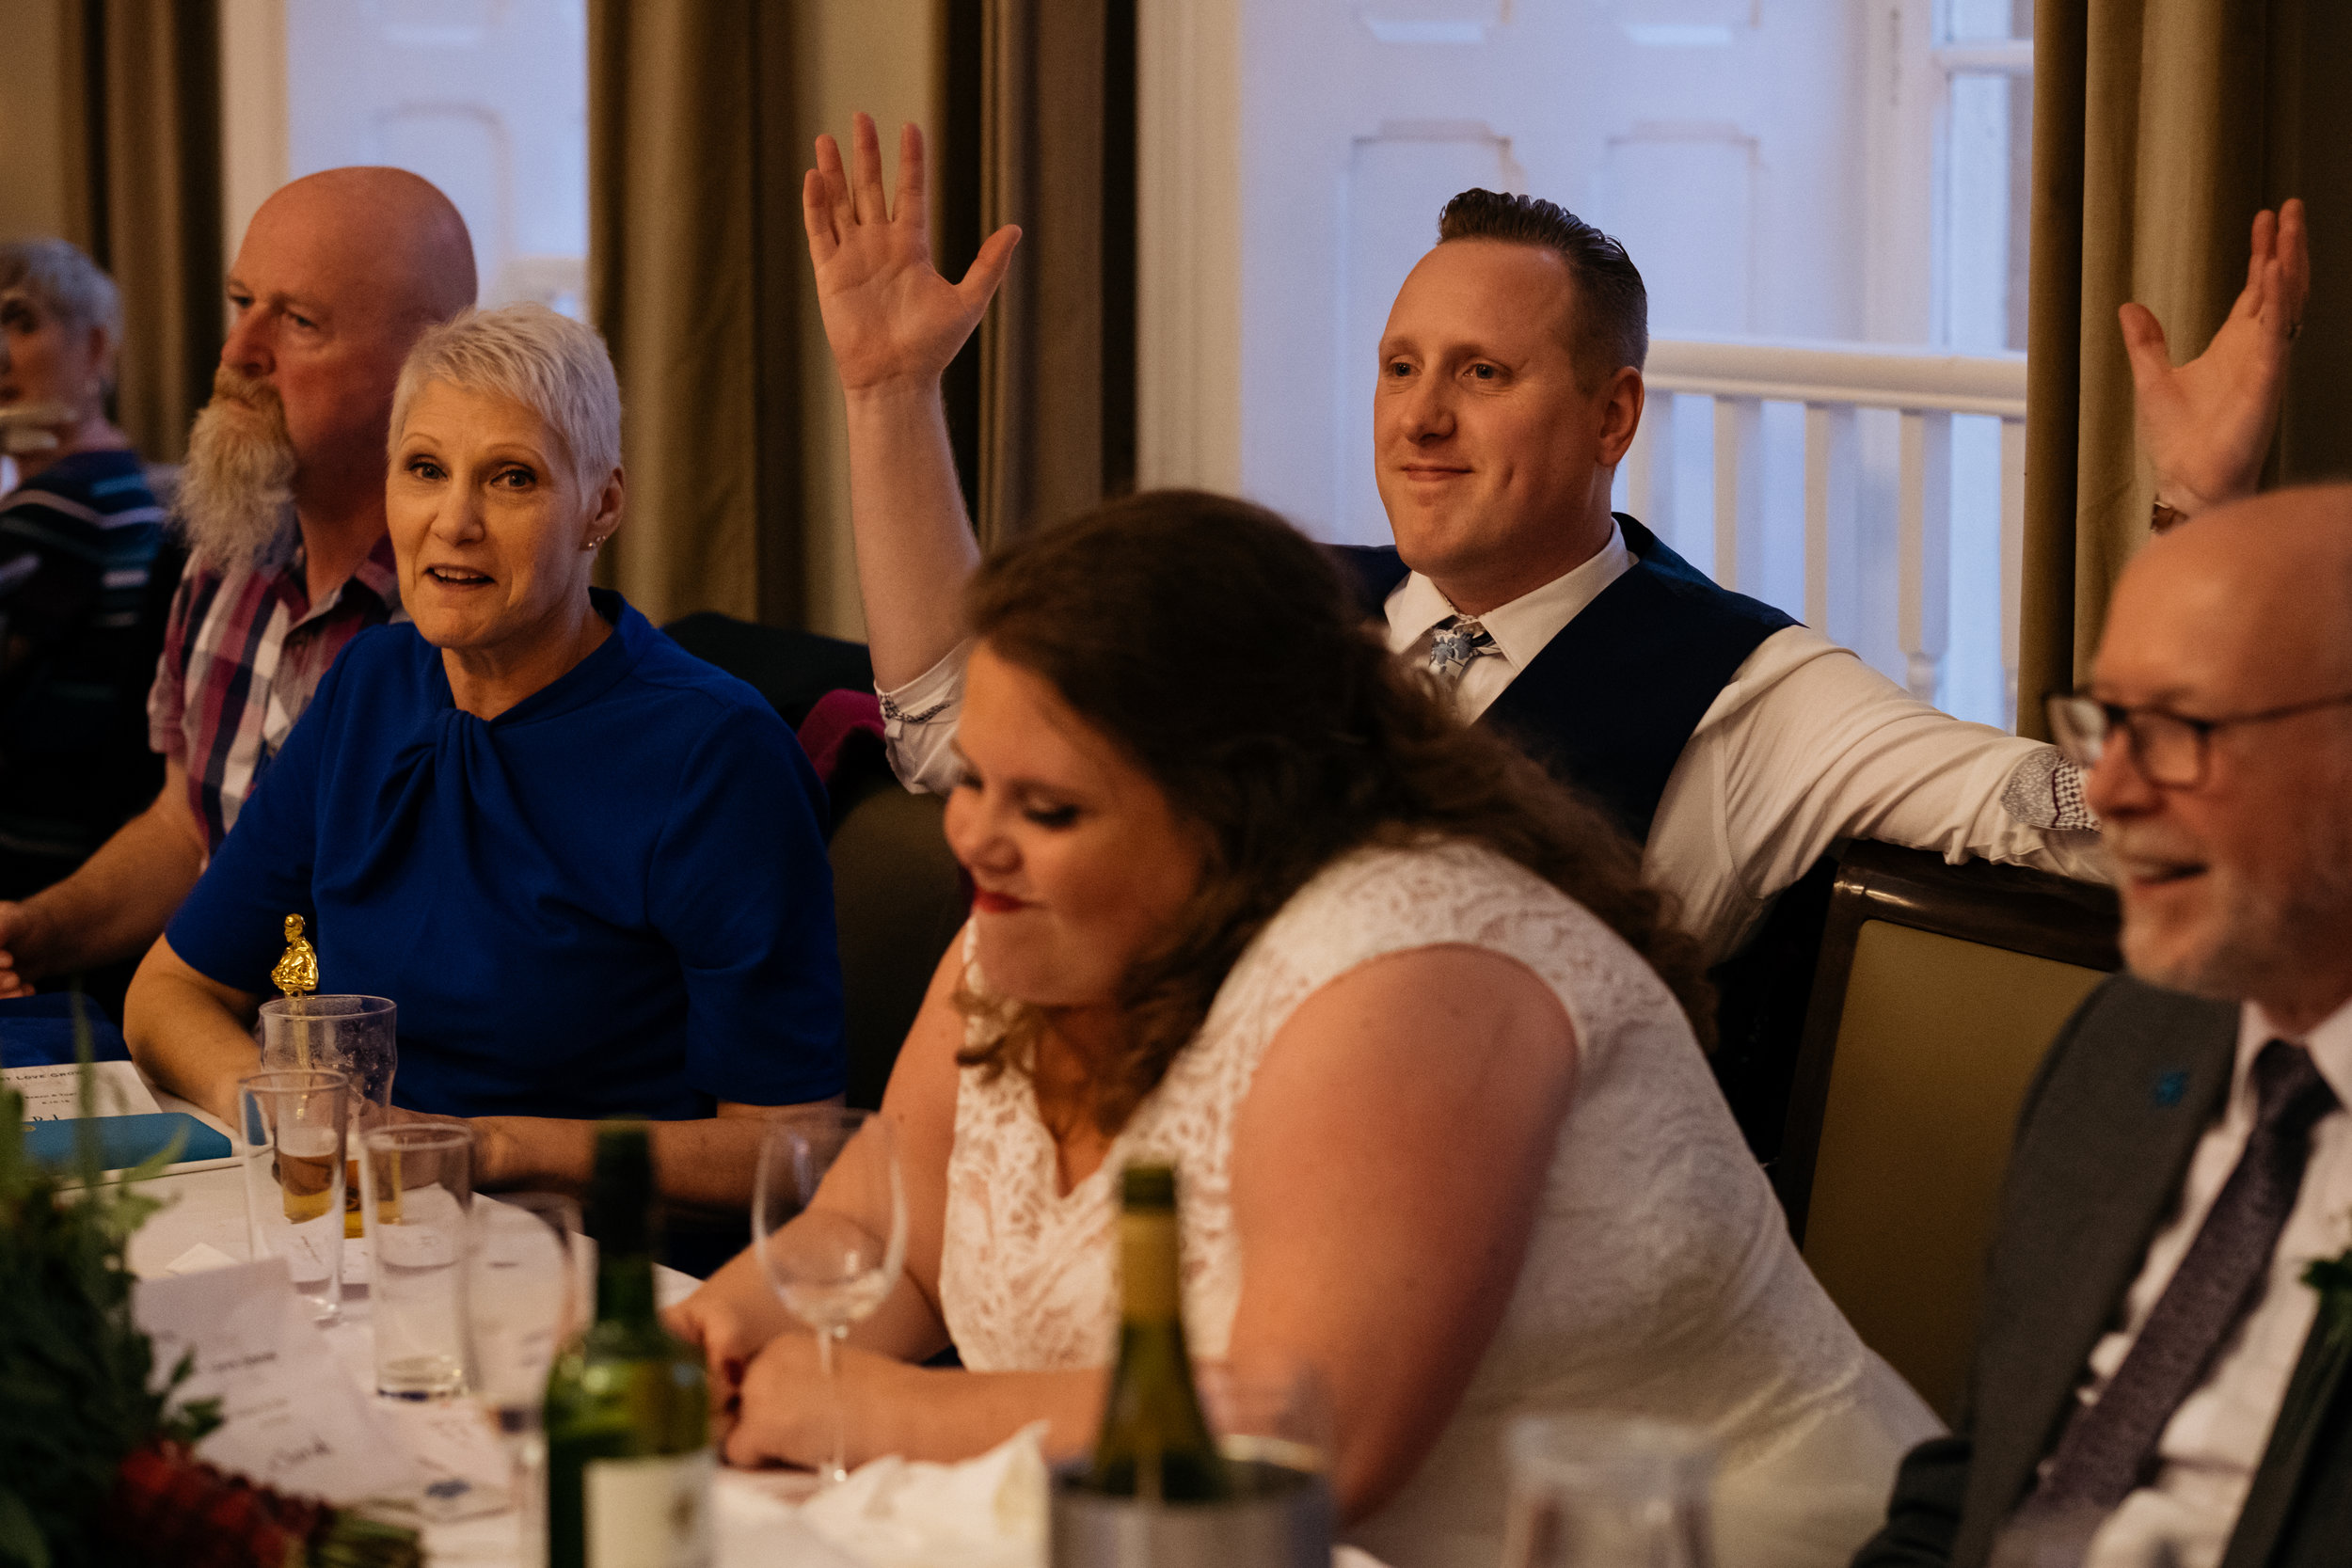 Wedding quiz reactions from Bride and Groom